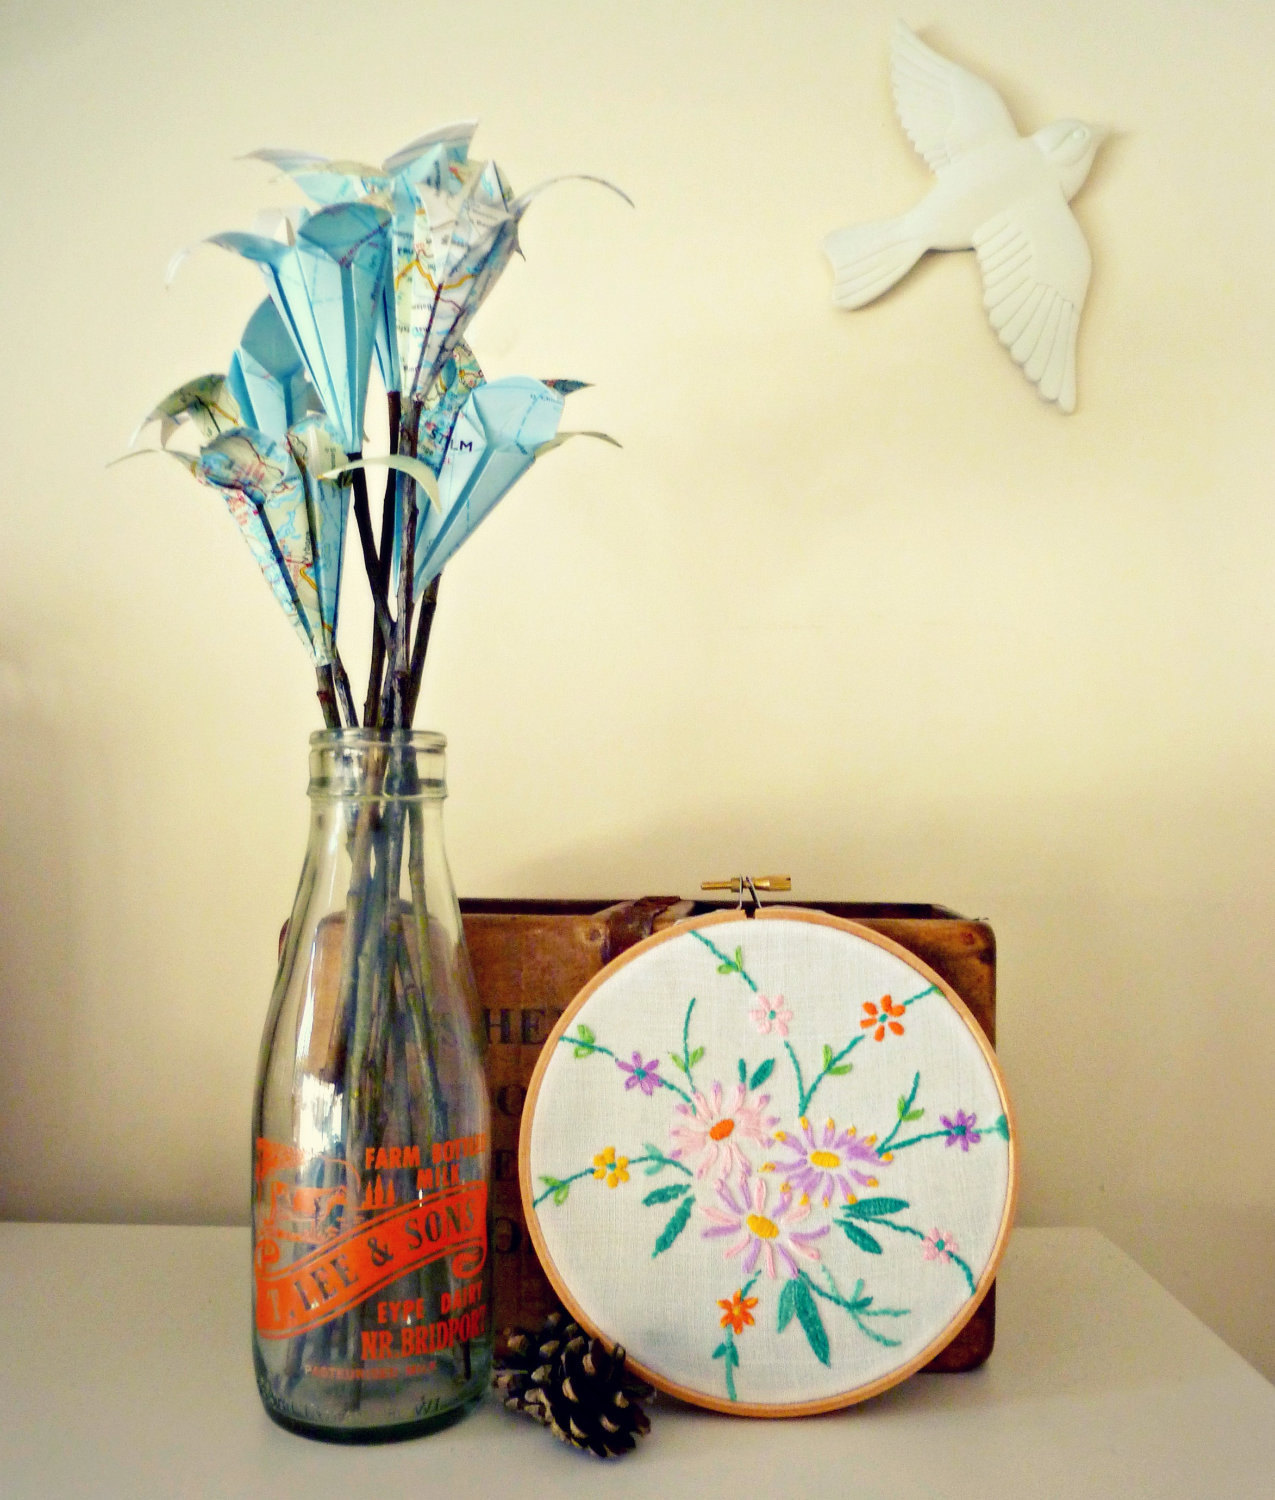 Diy Handicrafts Decor Items | My Decorative